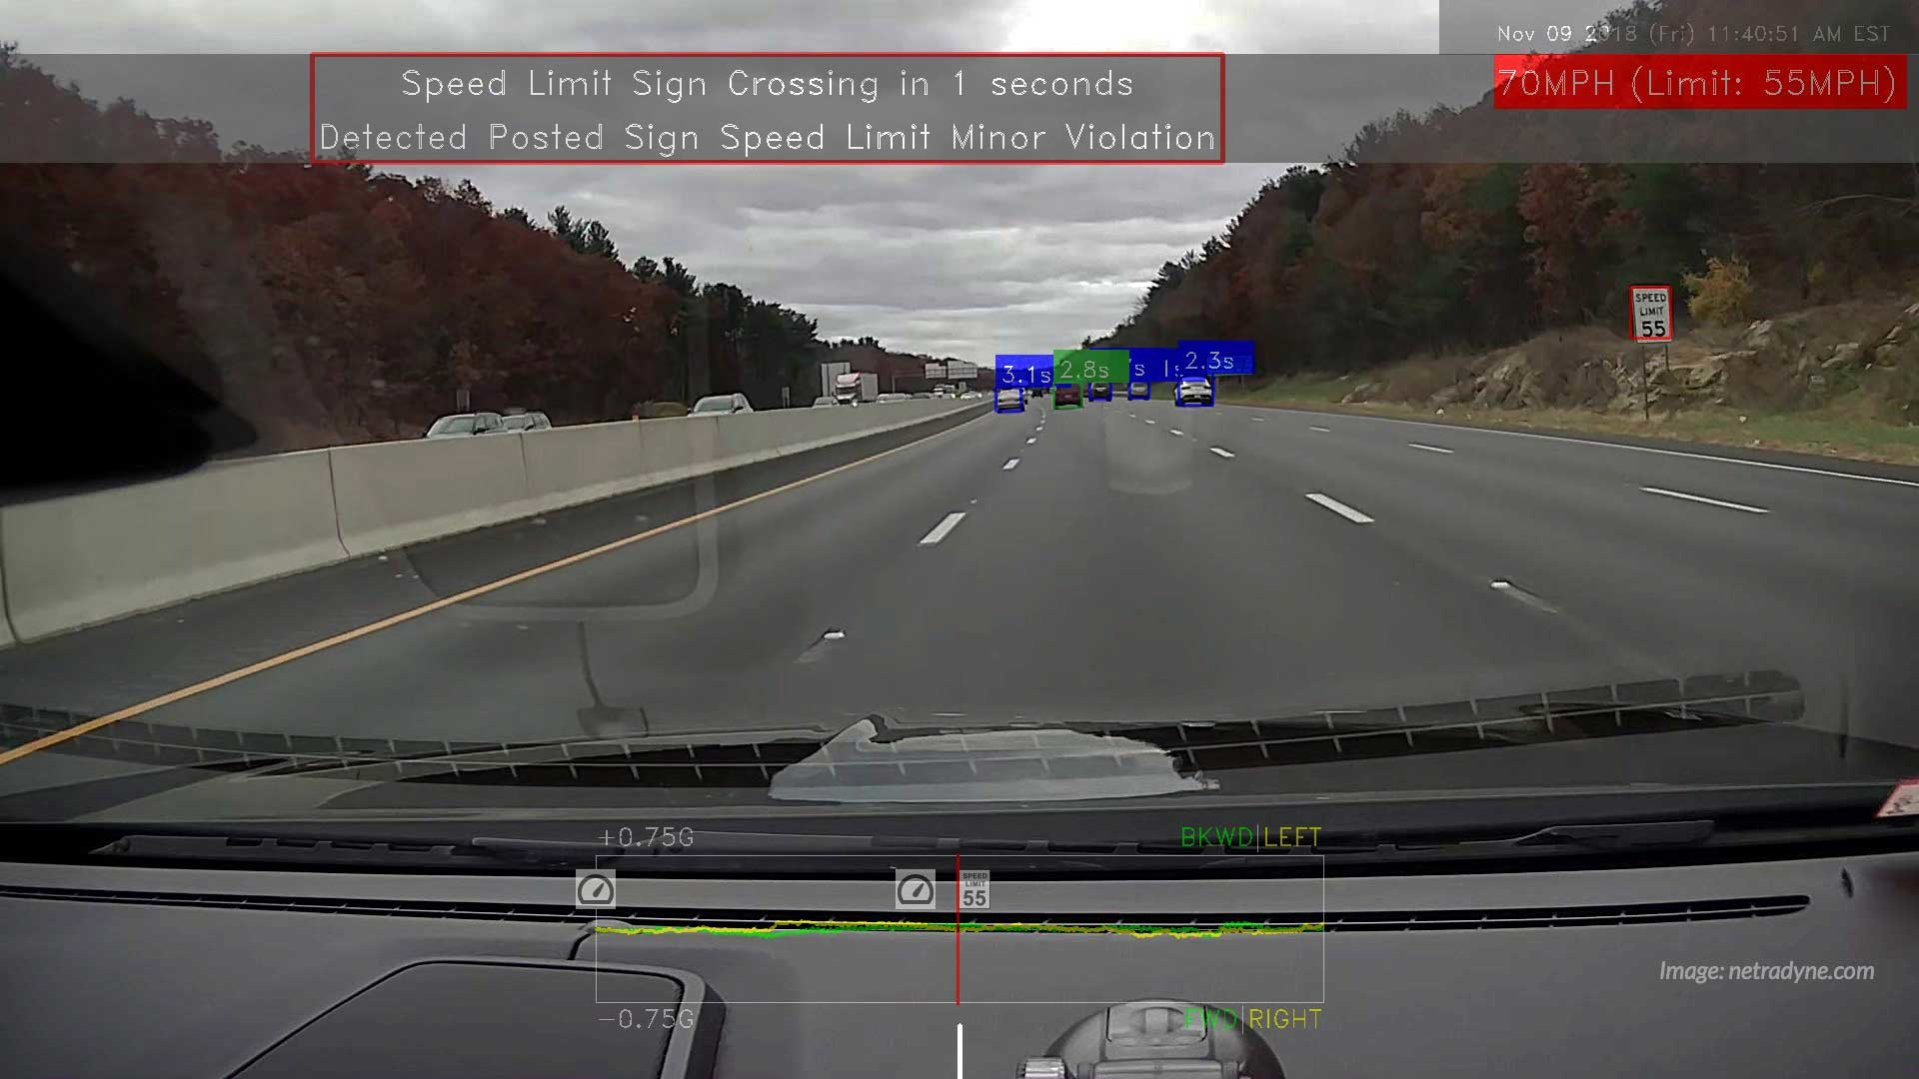 new-trucking-tech-front-facing-cameras-how-they-work-suppose-u-drive-01